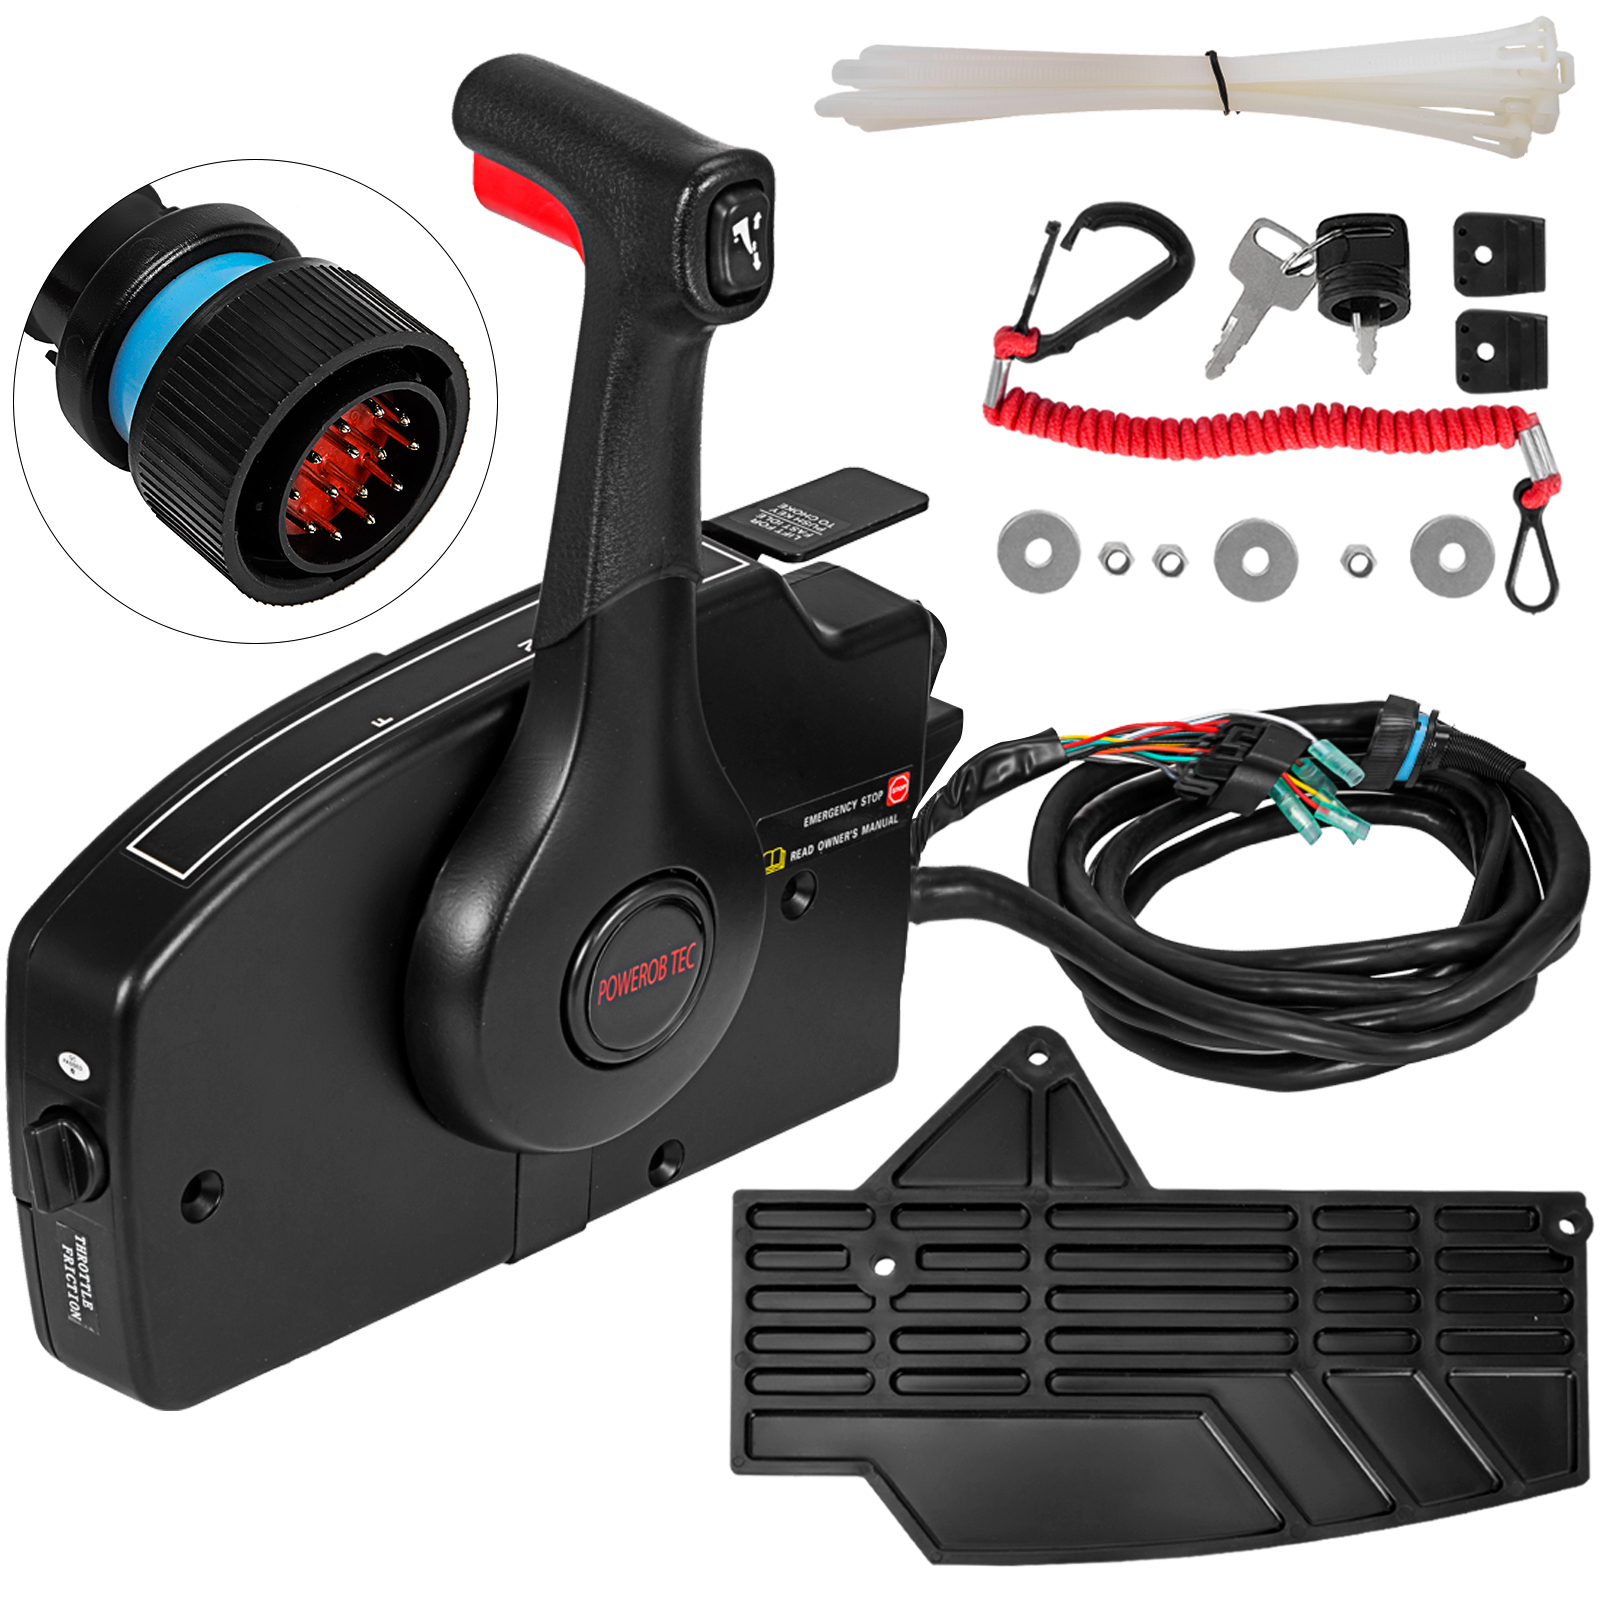 Details about For Mercury Outboard Mechanical Side Mount Remote Control 14  Pin 881170A13 USA